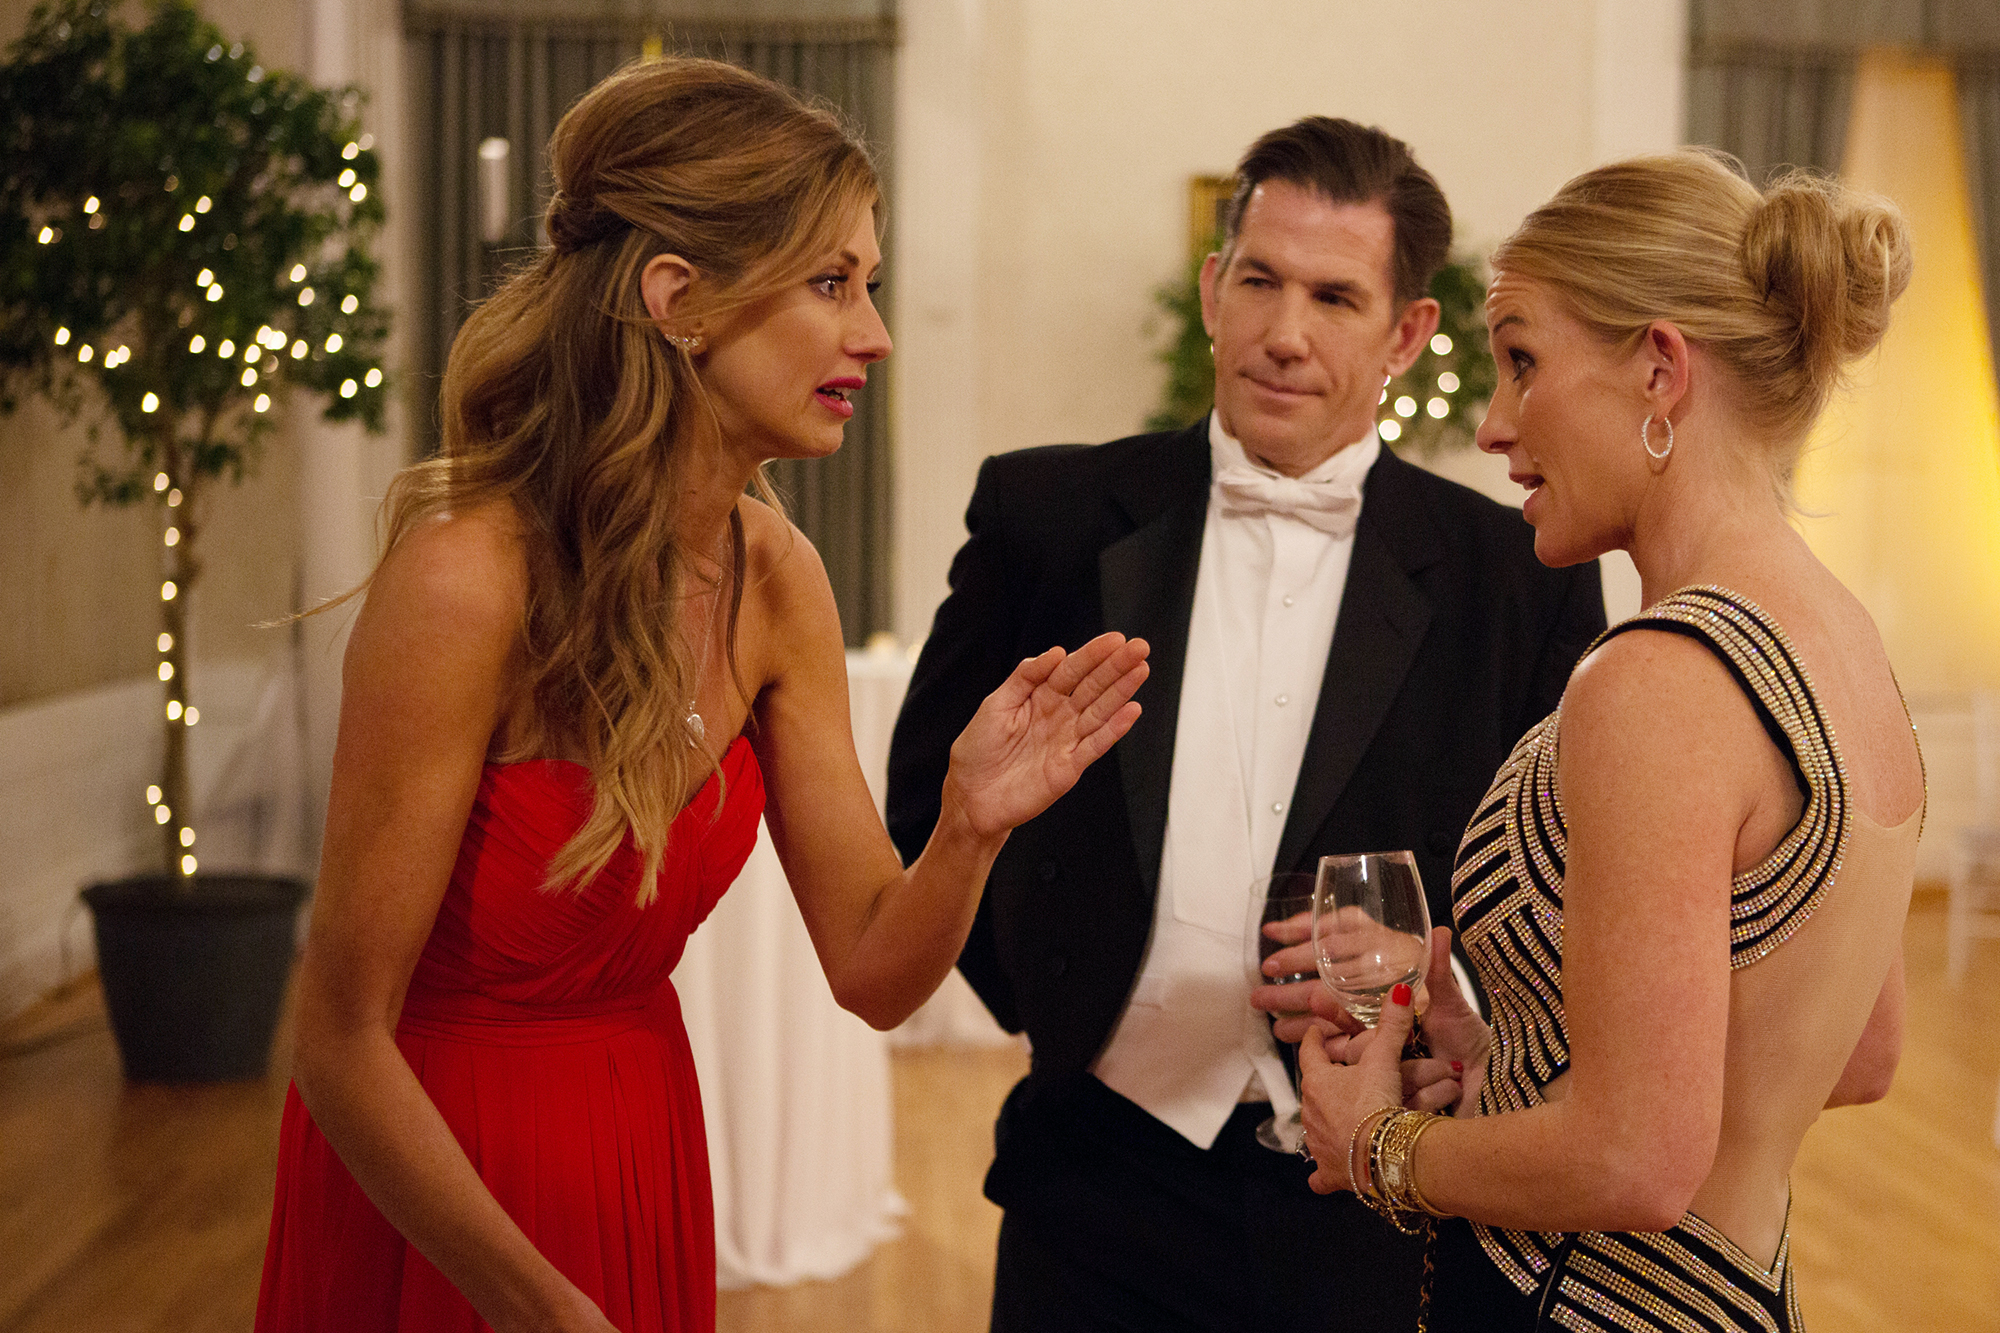 """Everything We Know About 'Southern Charm' Season 6 - A source tells Us exclusively that the network approached Ravenel's on-off girlfriend Ashley Jacobs about appearing on season 6, but she declined. """"They weren't specific about what her role would be since she doesn't have a lot of people to film with. They wanted Ashley to work her way back into the friend circle, but there was just no guarantee that that would happen,"""" the source explains."""